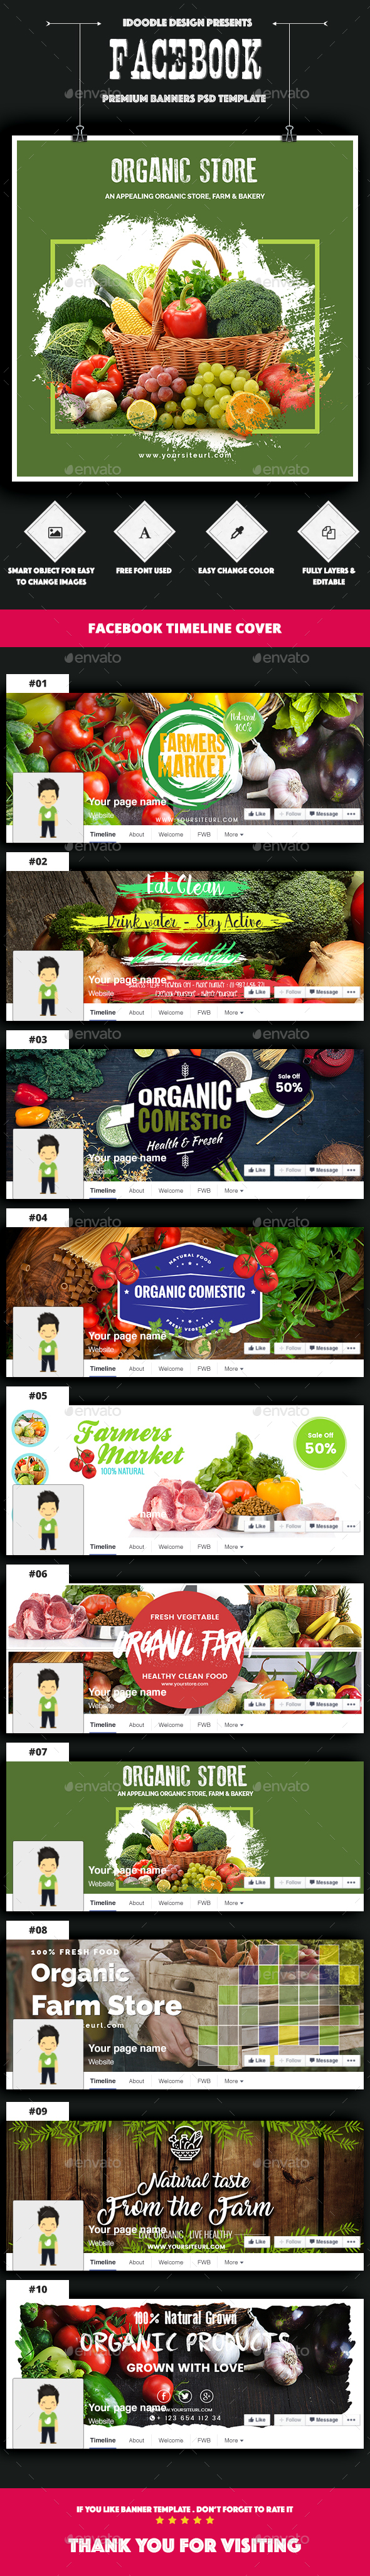 Organic Store, Farm Market, Fresh Food Facebook Covers - 10 PSD - Facebook Timeline Covers Social Media